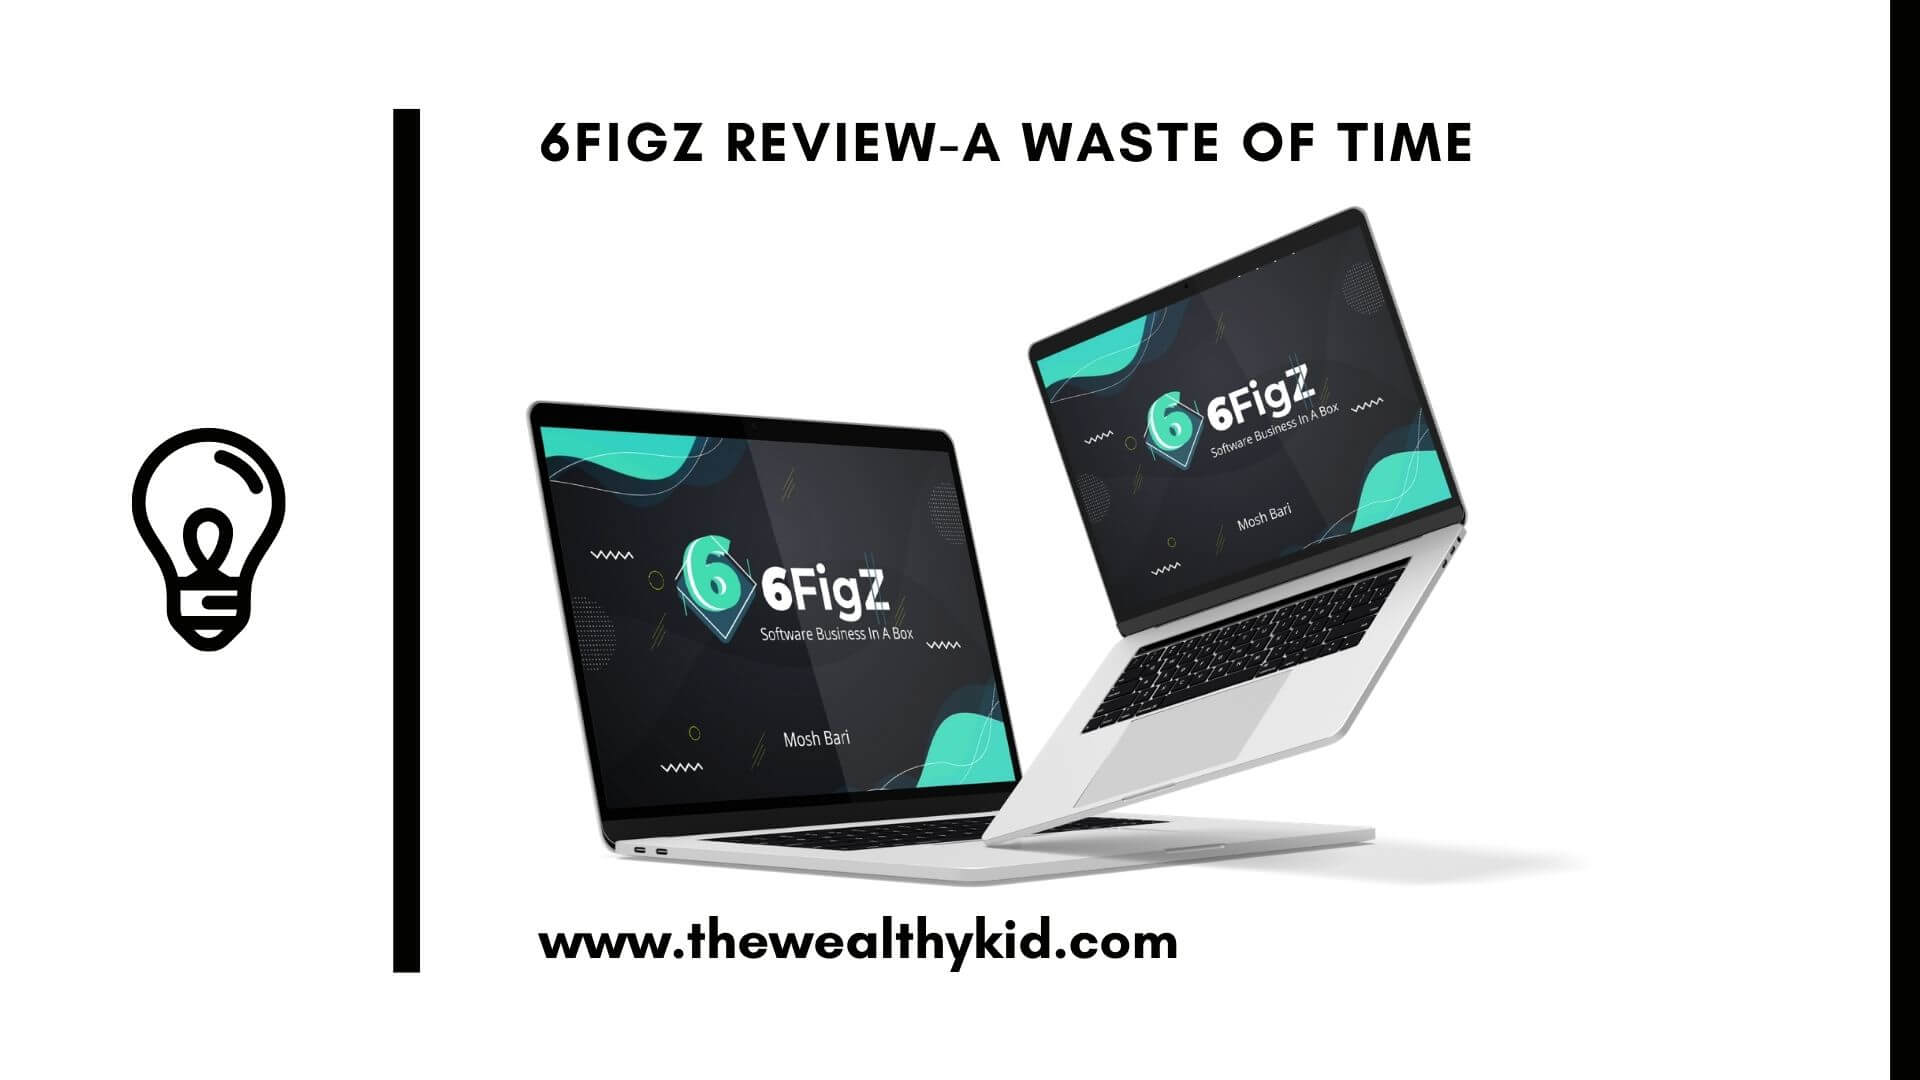 what is 6FigZ?